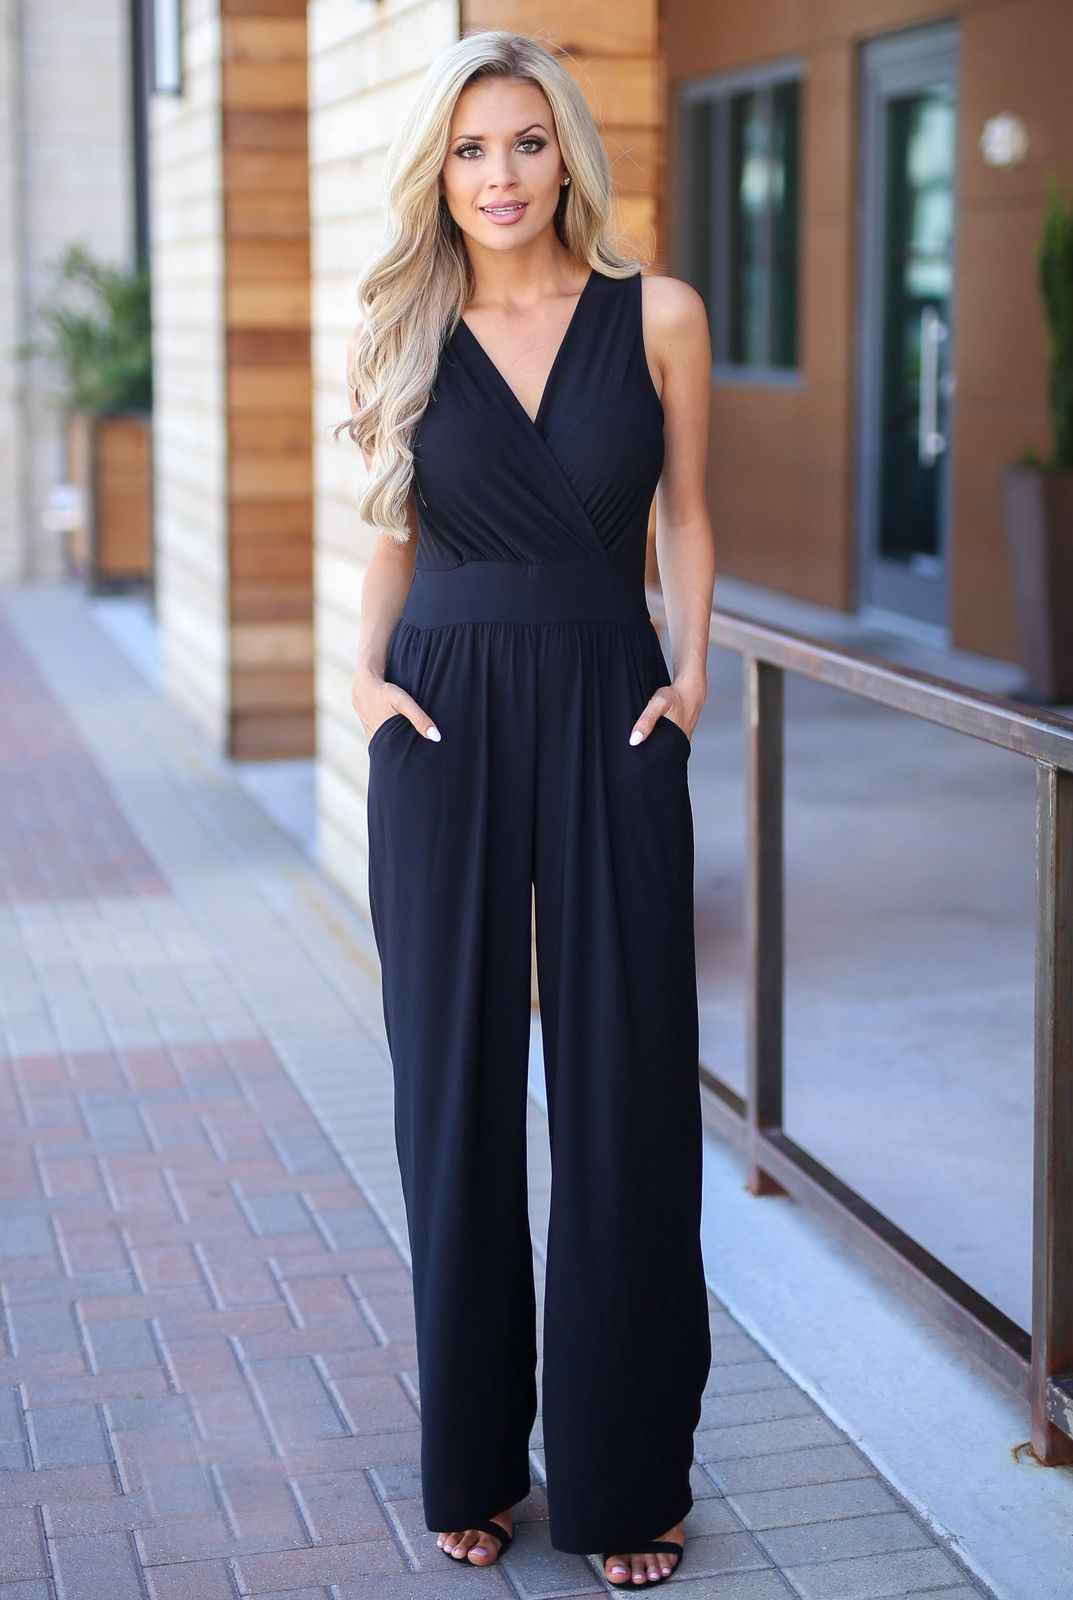 3b823a1664f5 ... New Women Jumpsuit Romper Bodycon Playsuit Elegant OL Sleeveless Solid  Color Casual Wide Leg Trousers Party ...